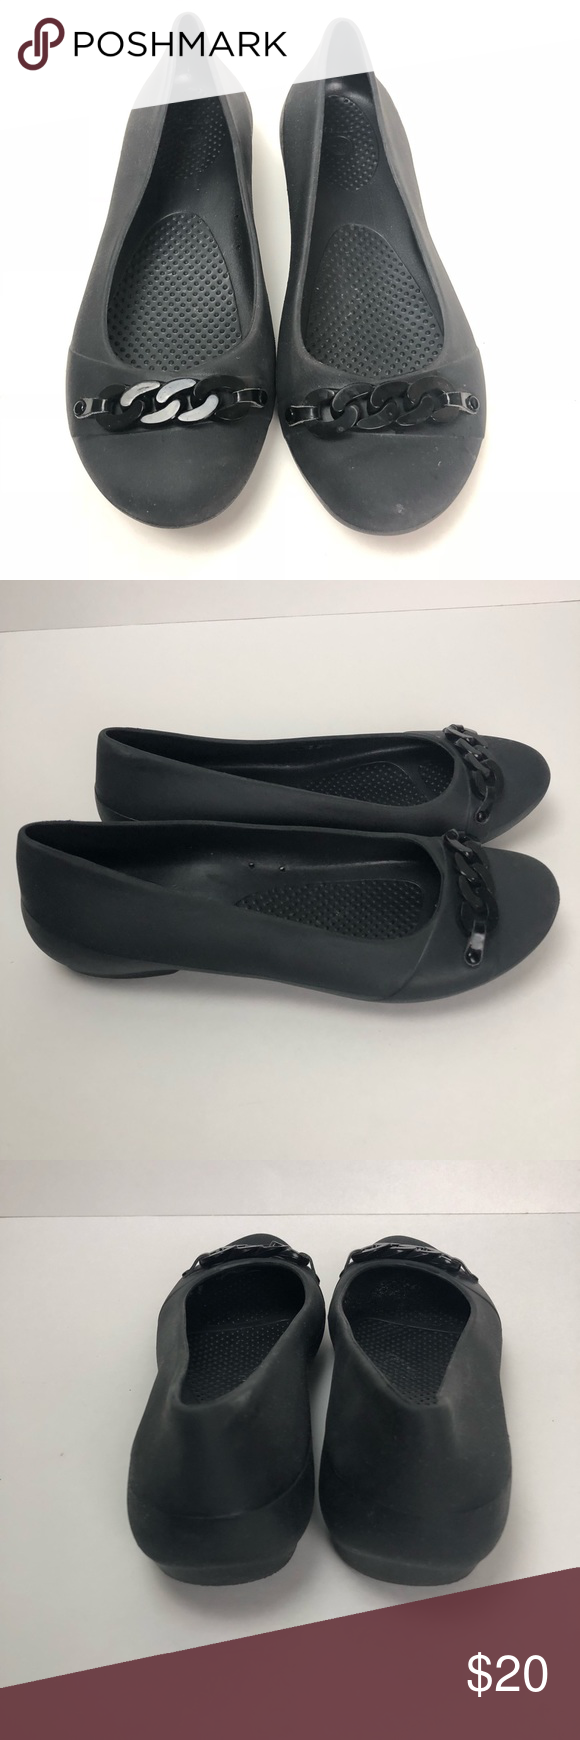 a0d66d79c Embellished Crocs work flats size 9W Ion perfect condition maybe worn once  or twice. No flaws. Black croc flats with chain detail. Size 9W. CROCS  Shoes ...